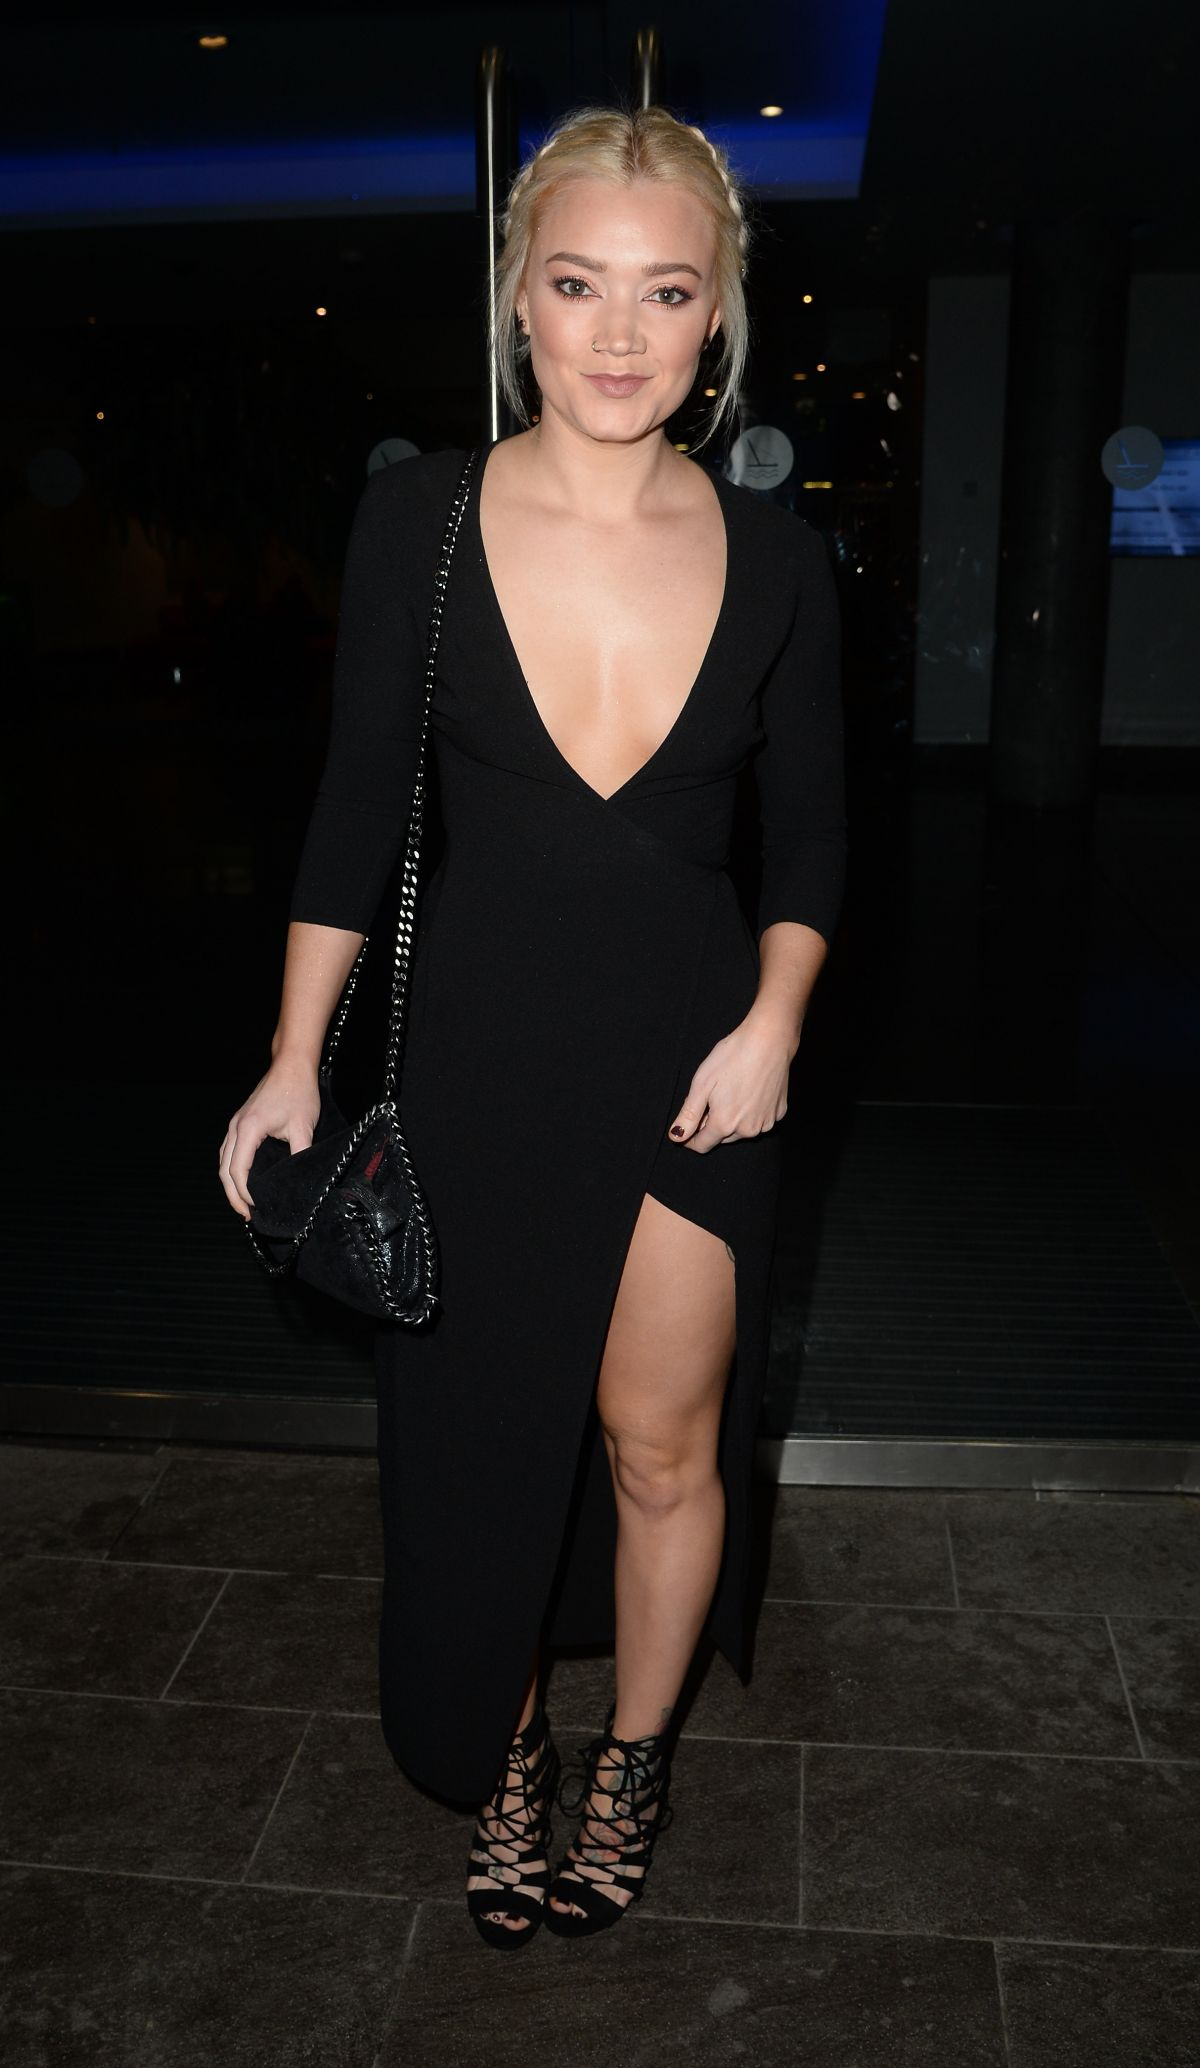 HOLLY JAY BOWES Arrives at Lowry Hotel in Manchester 03/03/2017